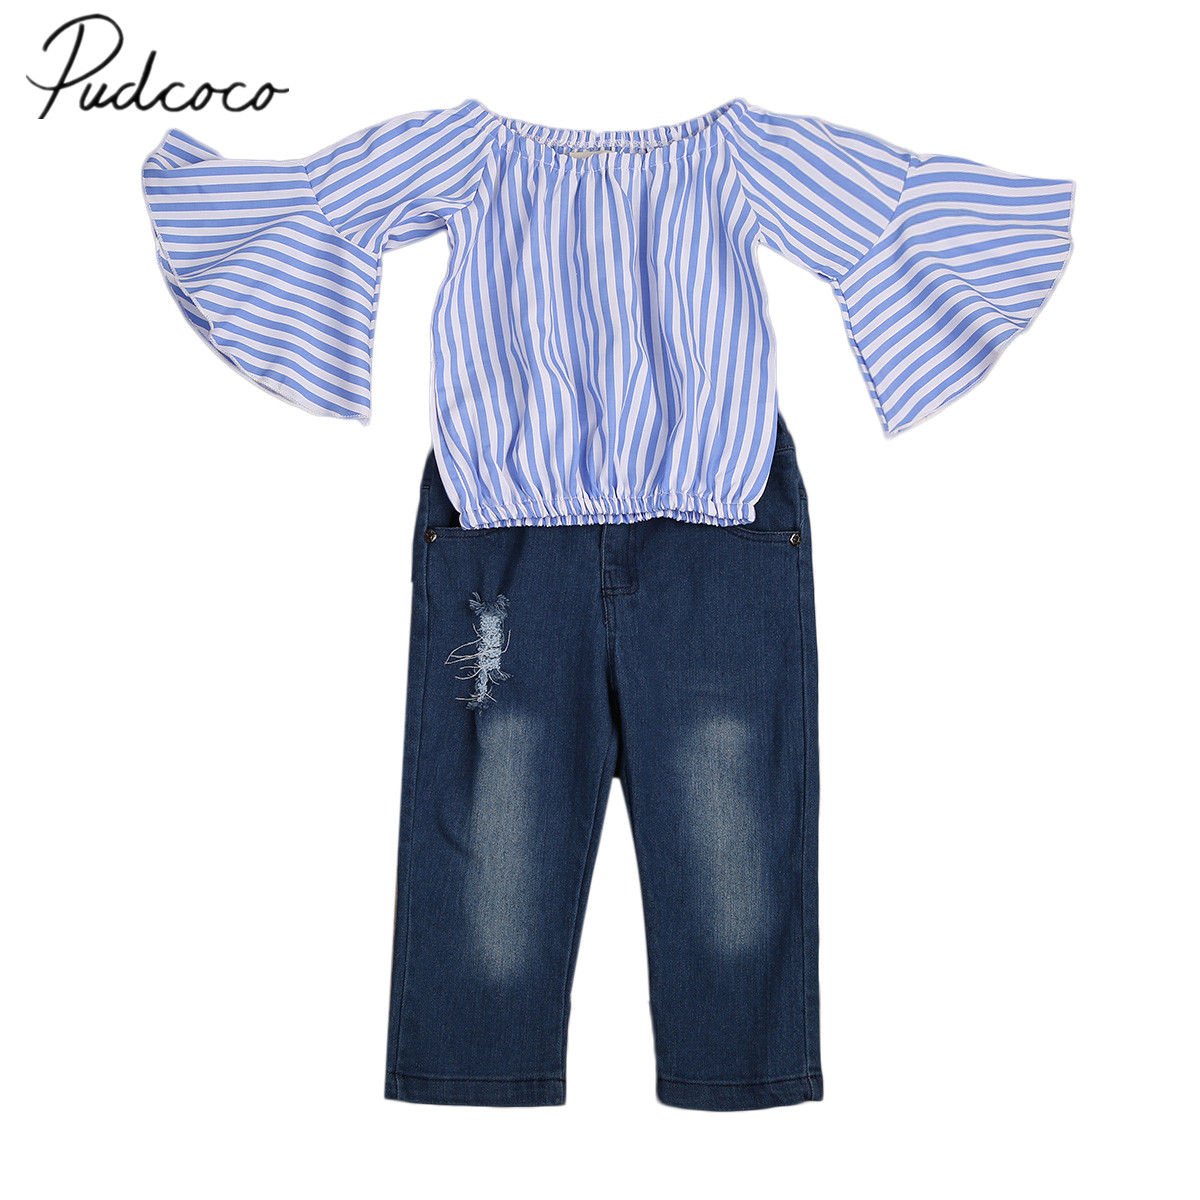 2017 Brand New 2pcs Toddler Infant Kids Baby Girls Outfits Set Striped Top T-shirt Jeans Pants Long Sleeve Autumn Clothes 1-7T